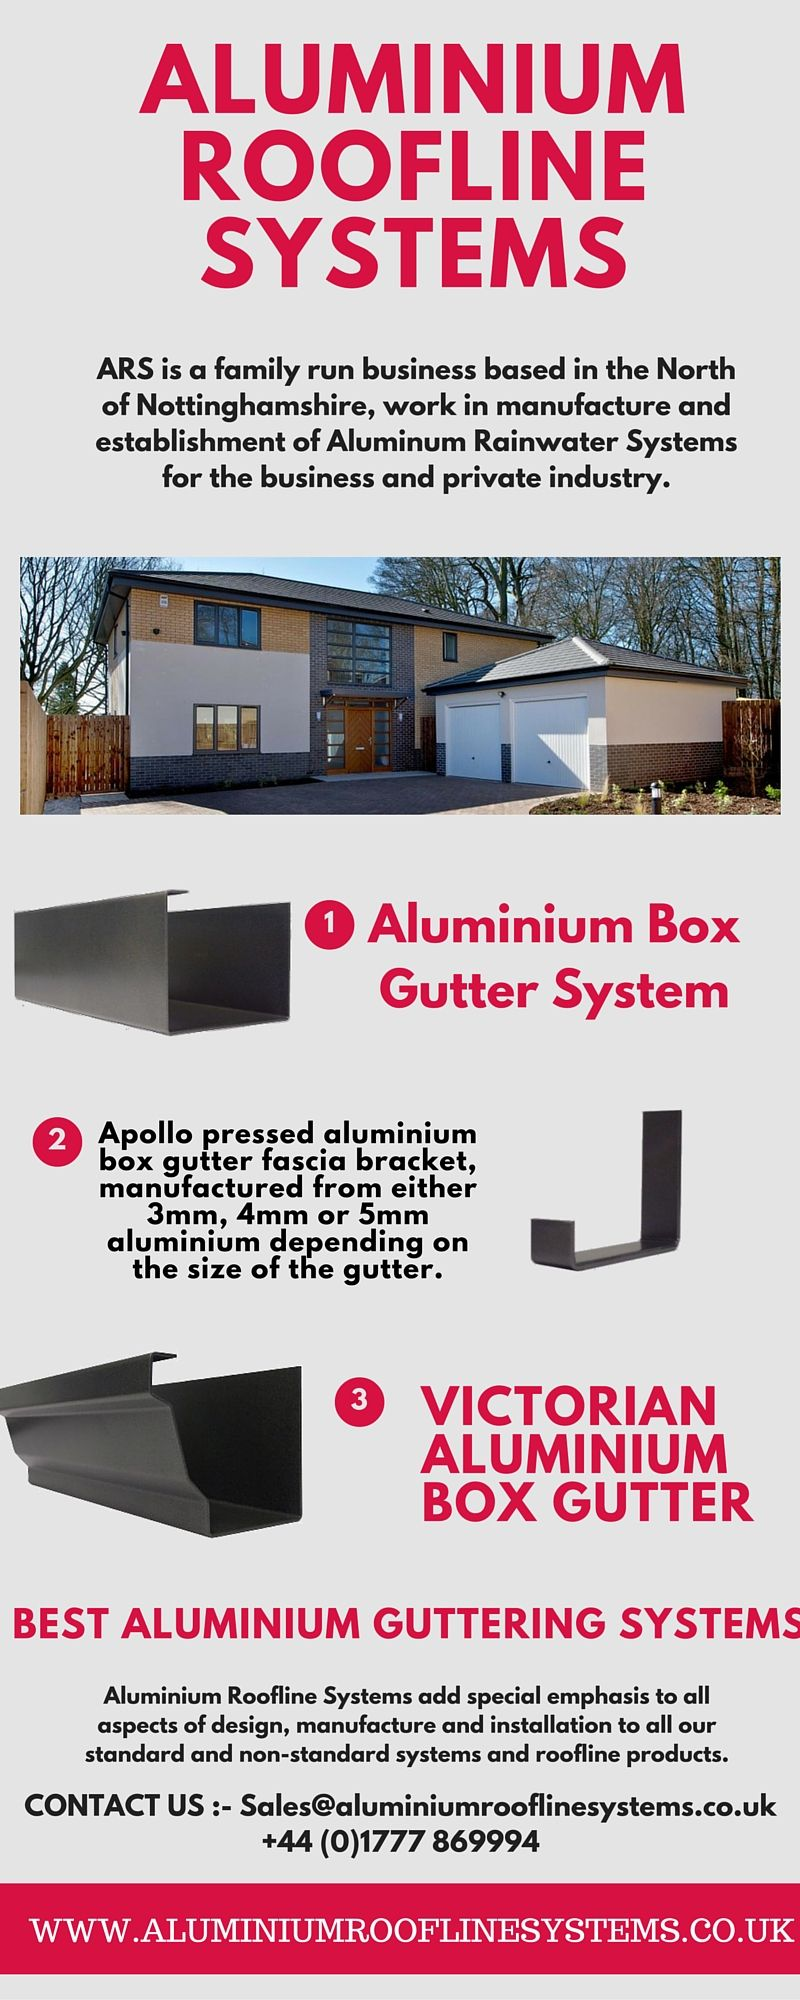 Ars Has Been Built Up For A Long Time And Has Extended Through Inward Development And Endeavors To Wind Up One Nottinghamshire Aluminum Fabrication Box Gutter